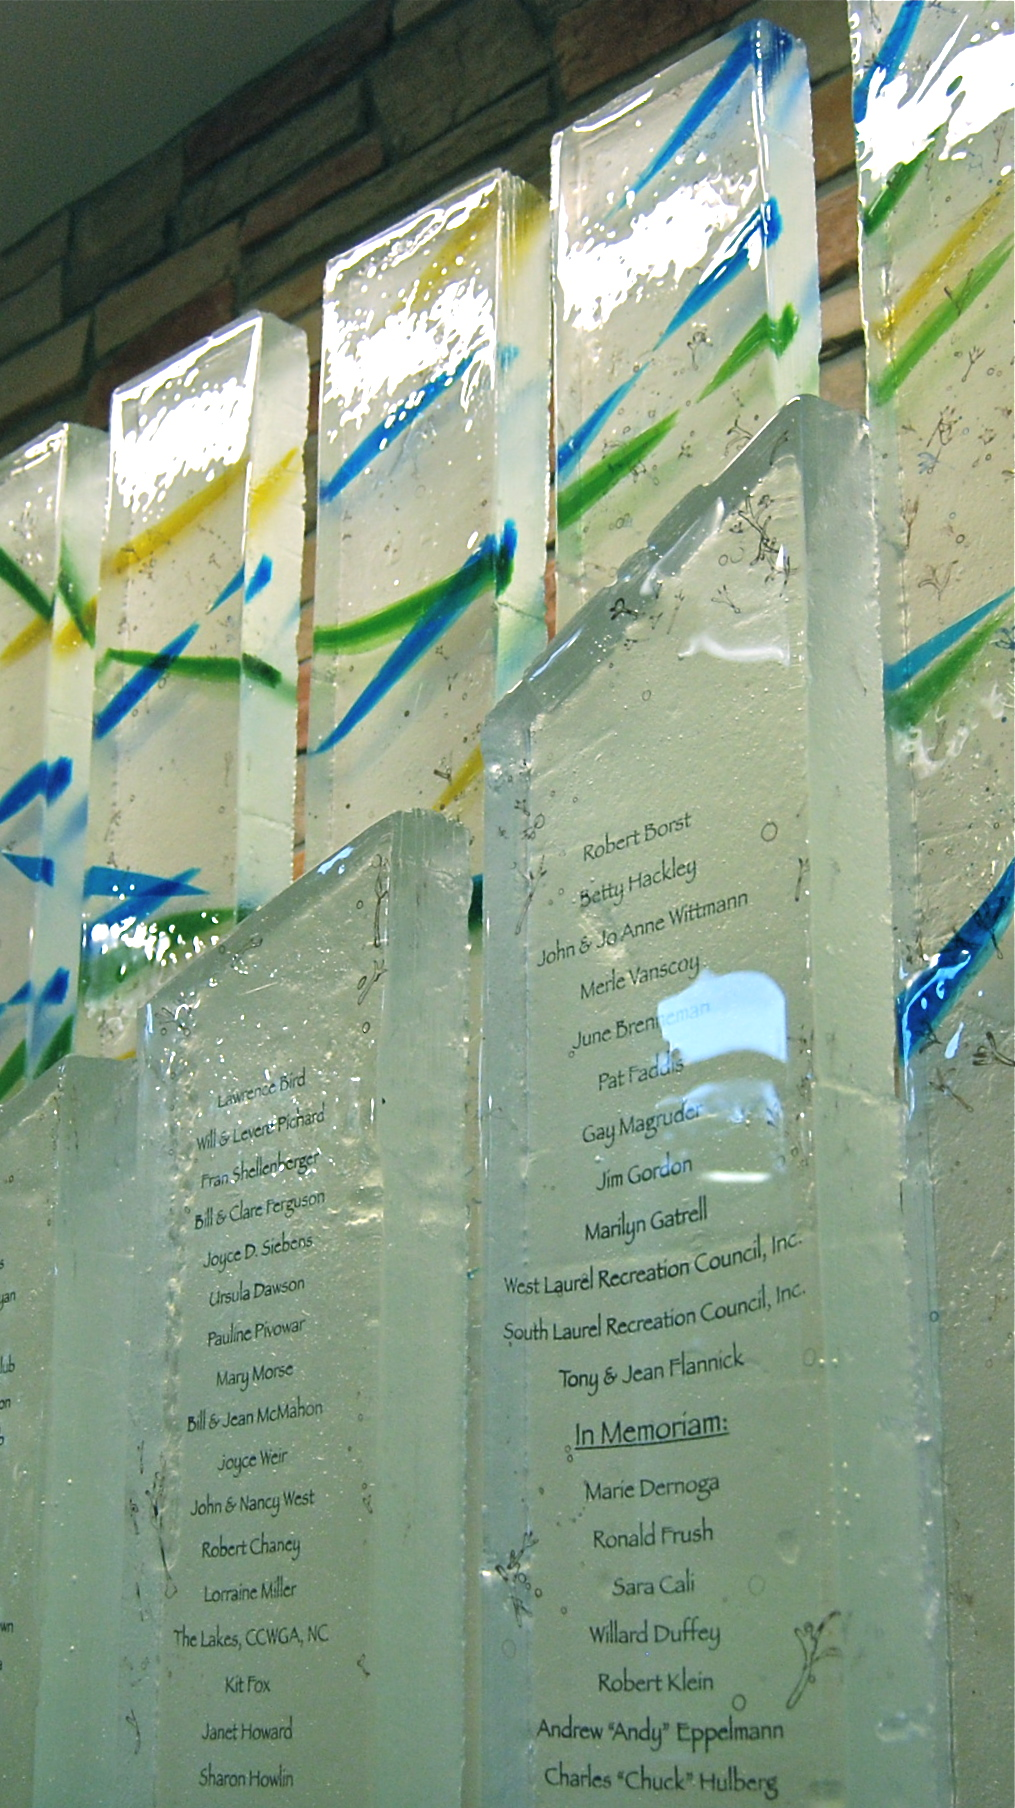 Beltsville-Laurel - Donor Recognition Sculpture - Fused glass columns with a custom made steel base - 7' high x 6' wide (side detail).